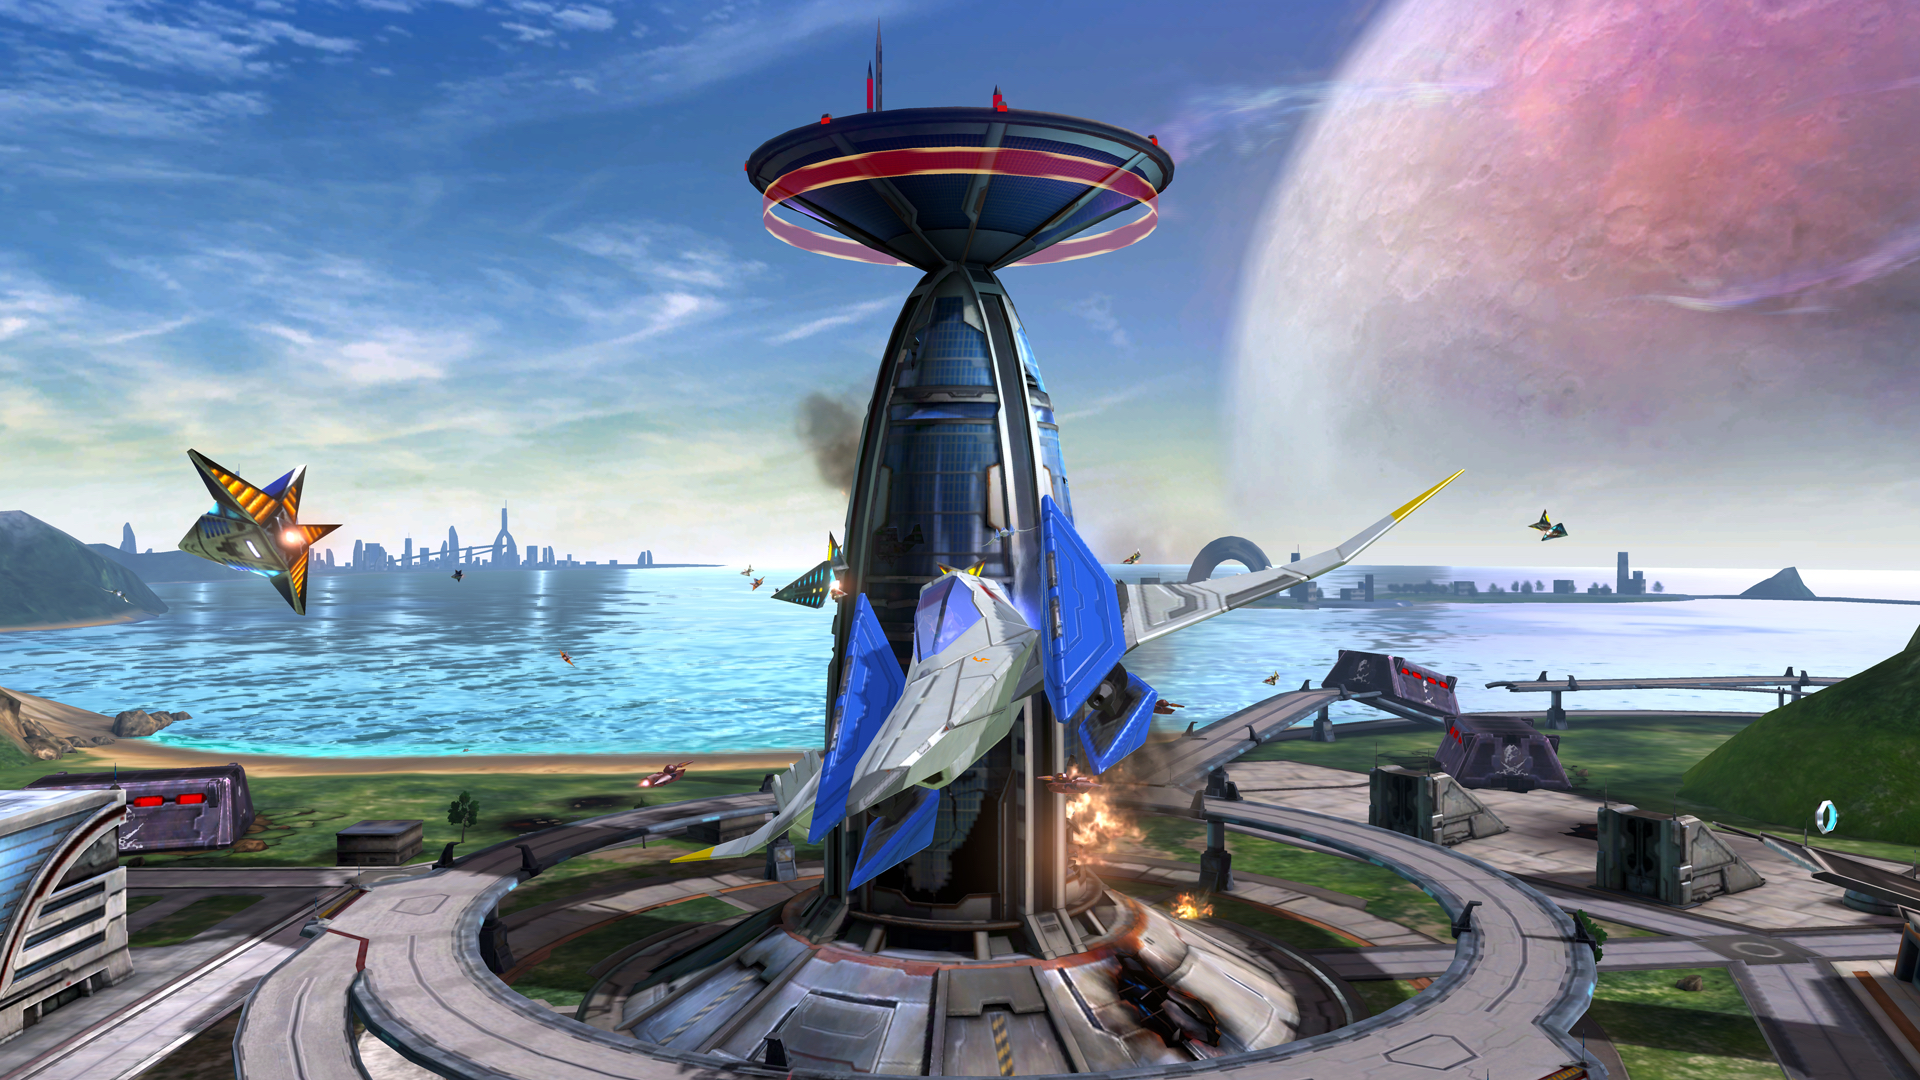 Star Fox Zero doesn't seem to have a whole lot going for it outside of its motion controls.